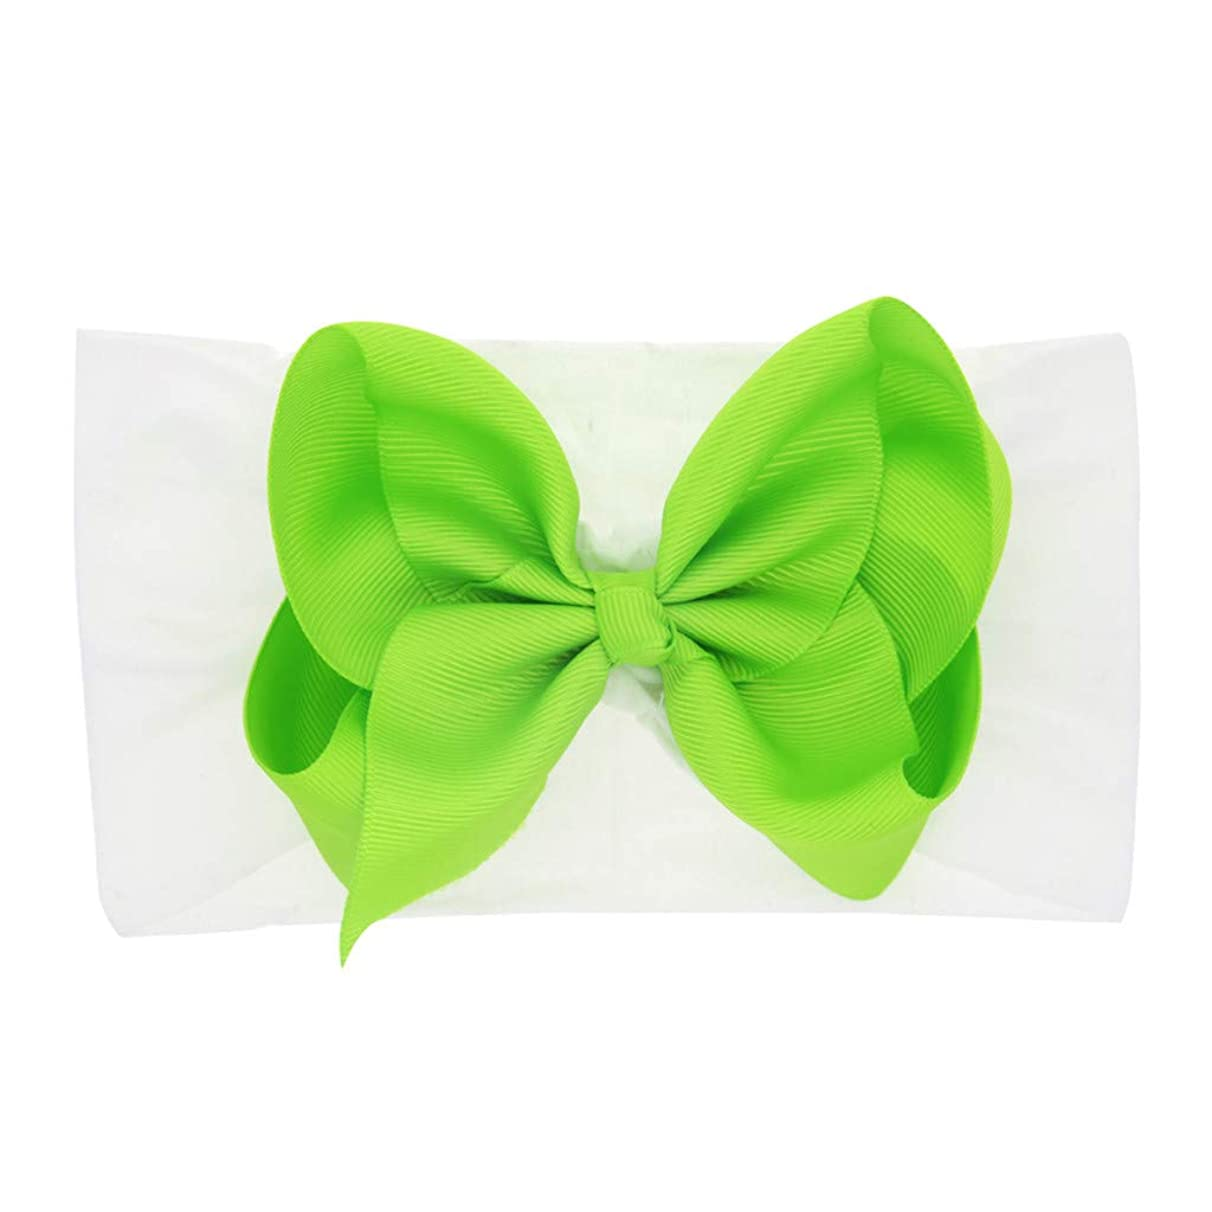 SMALLE ??? Baby Headbands and Bows for Newborn, Baby Girls Bow Knot Turban Headbandaccessories Newborn